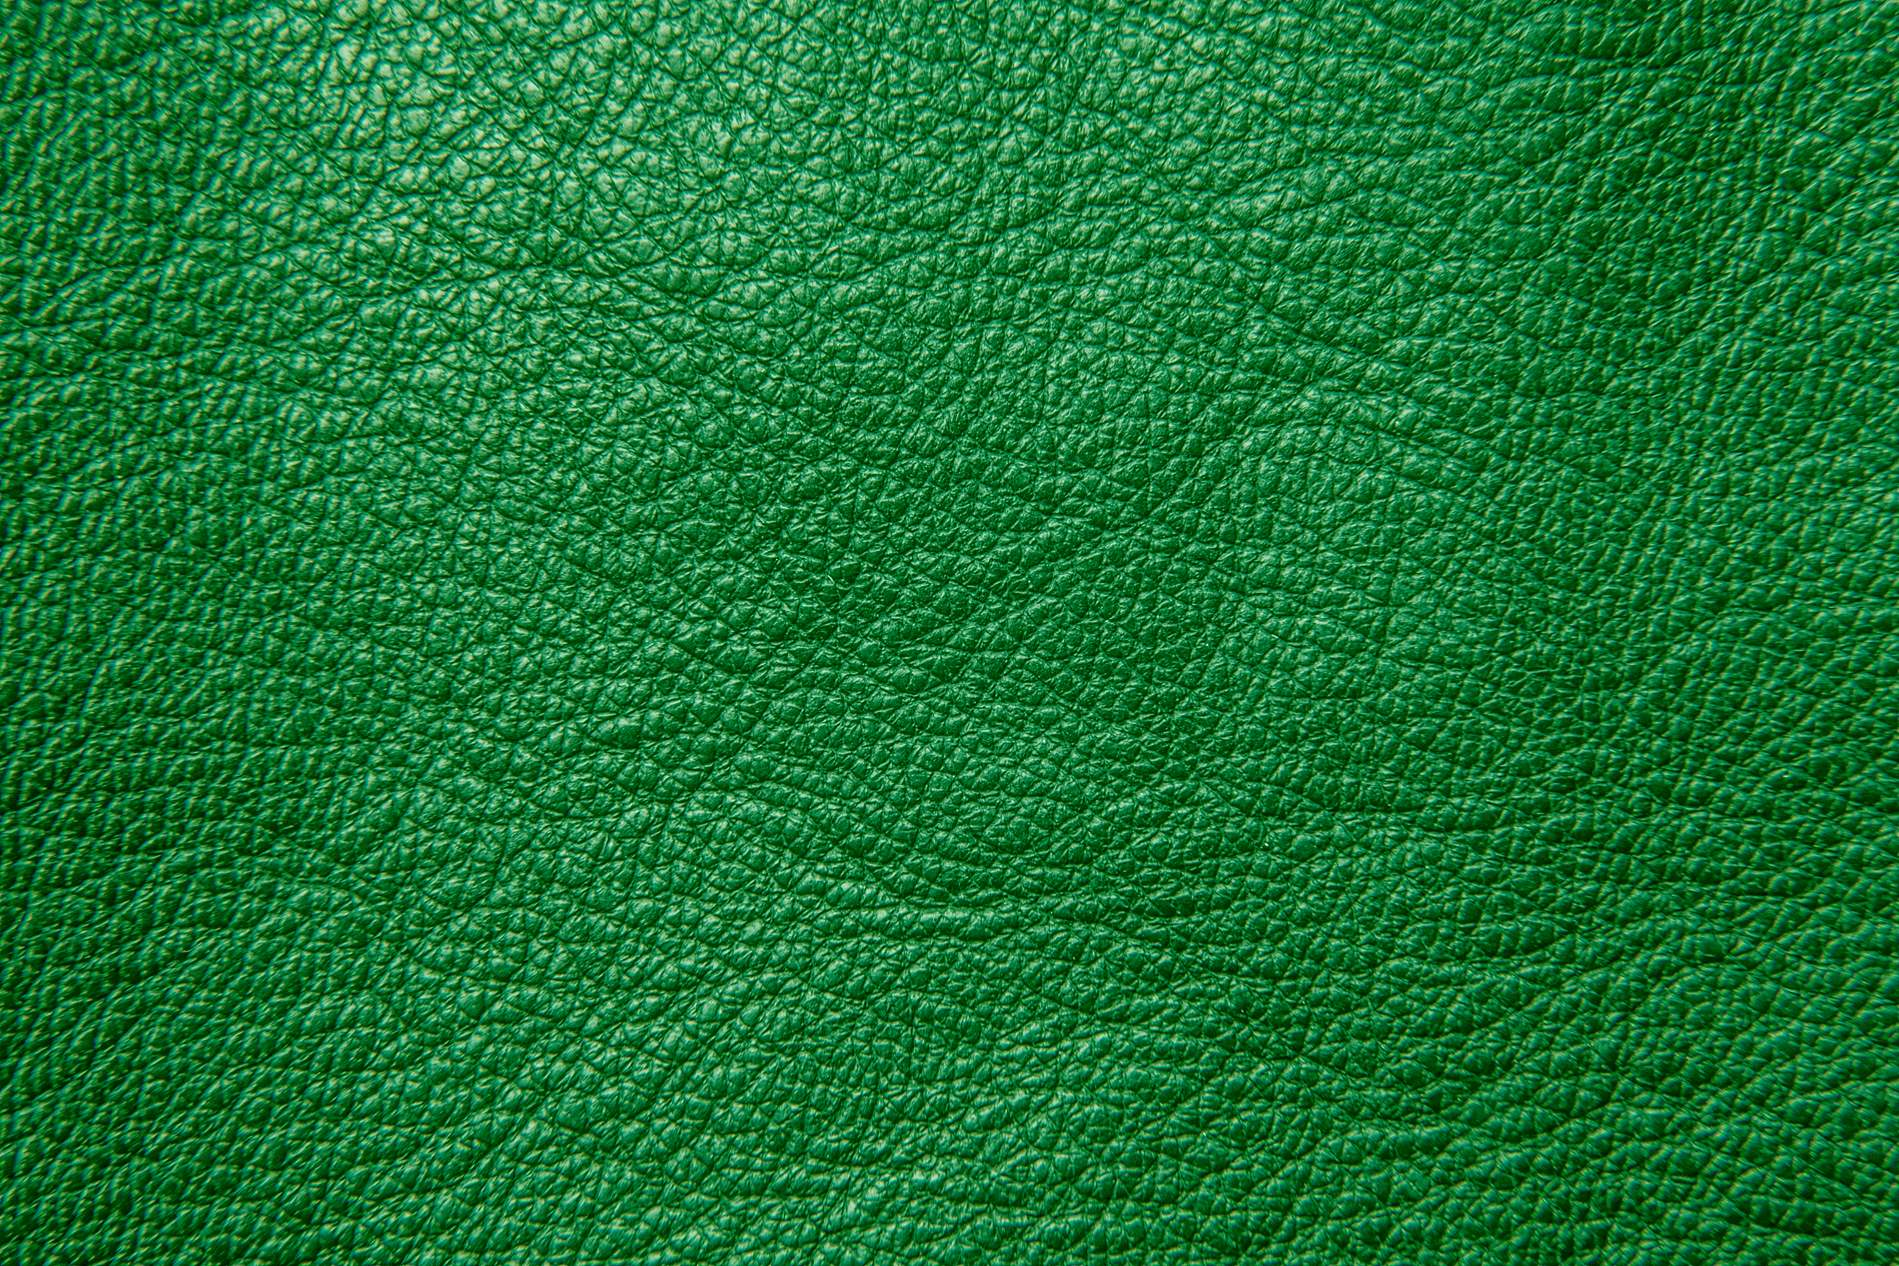 Green Leather Texture Photohdx